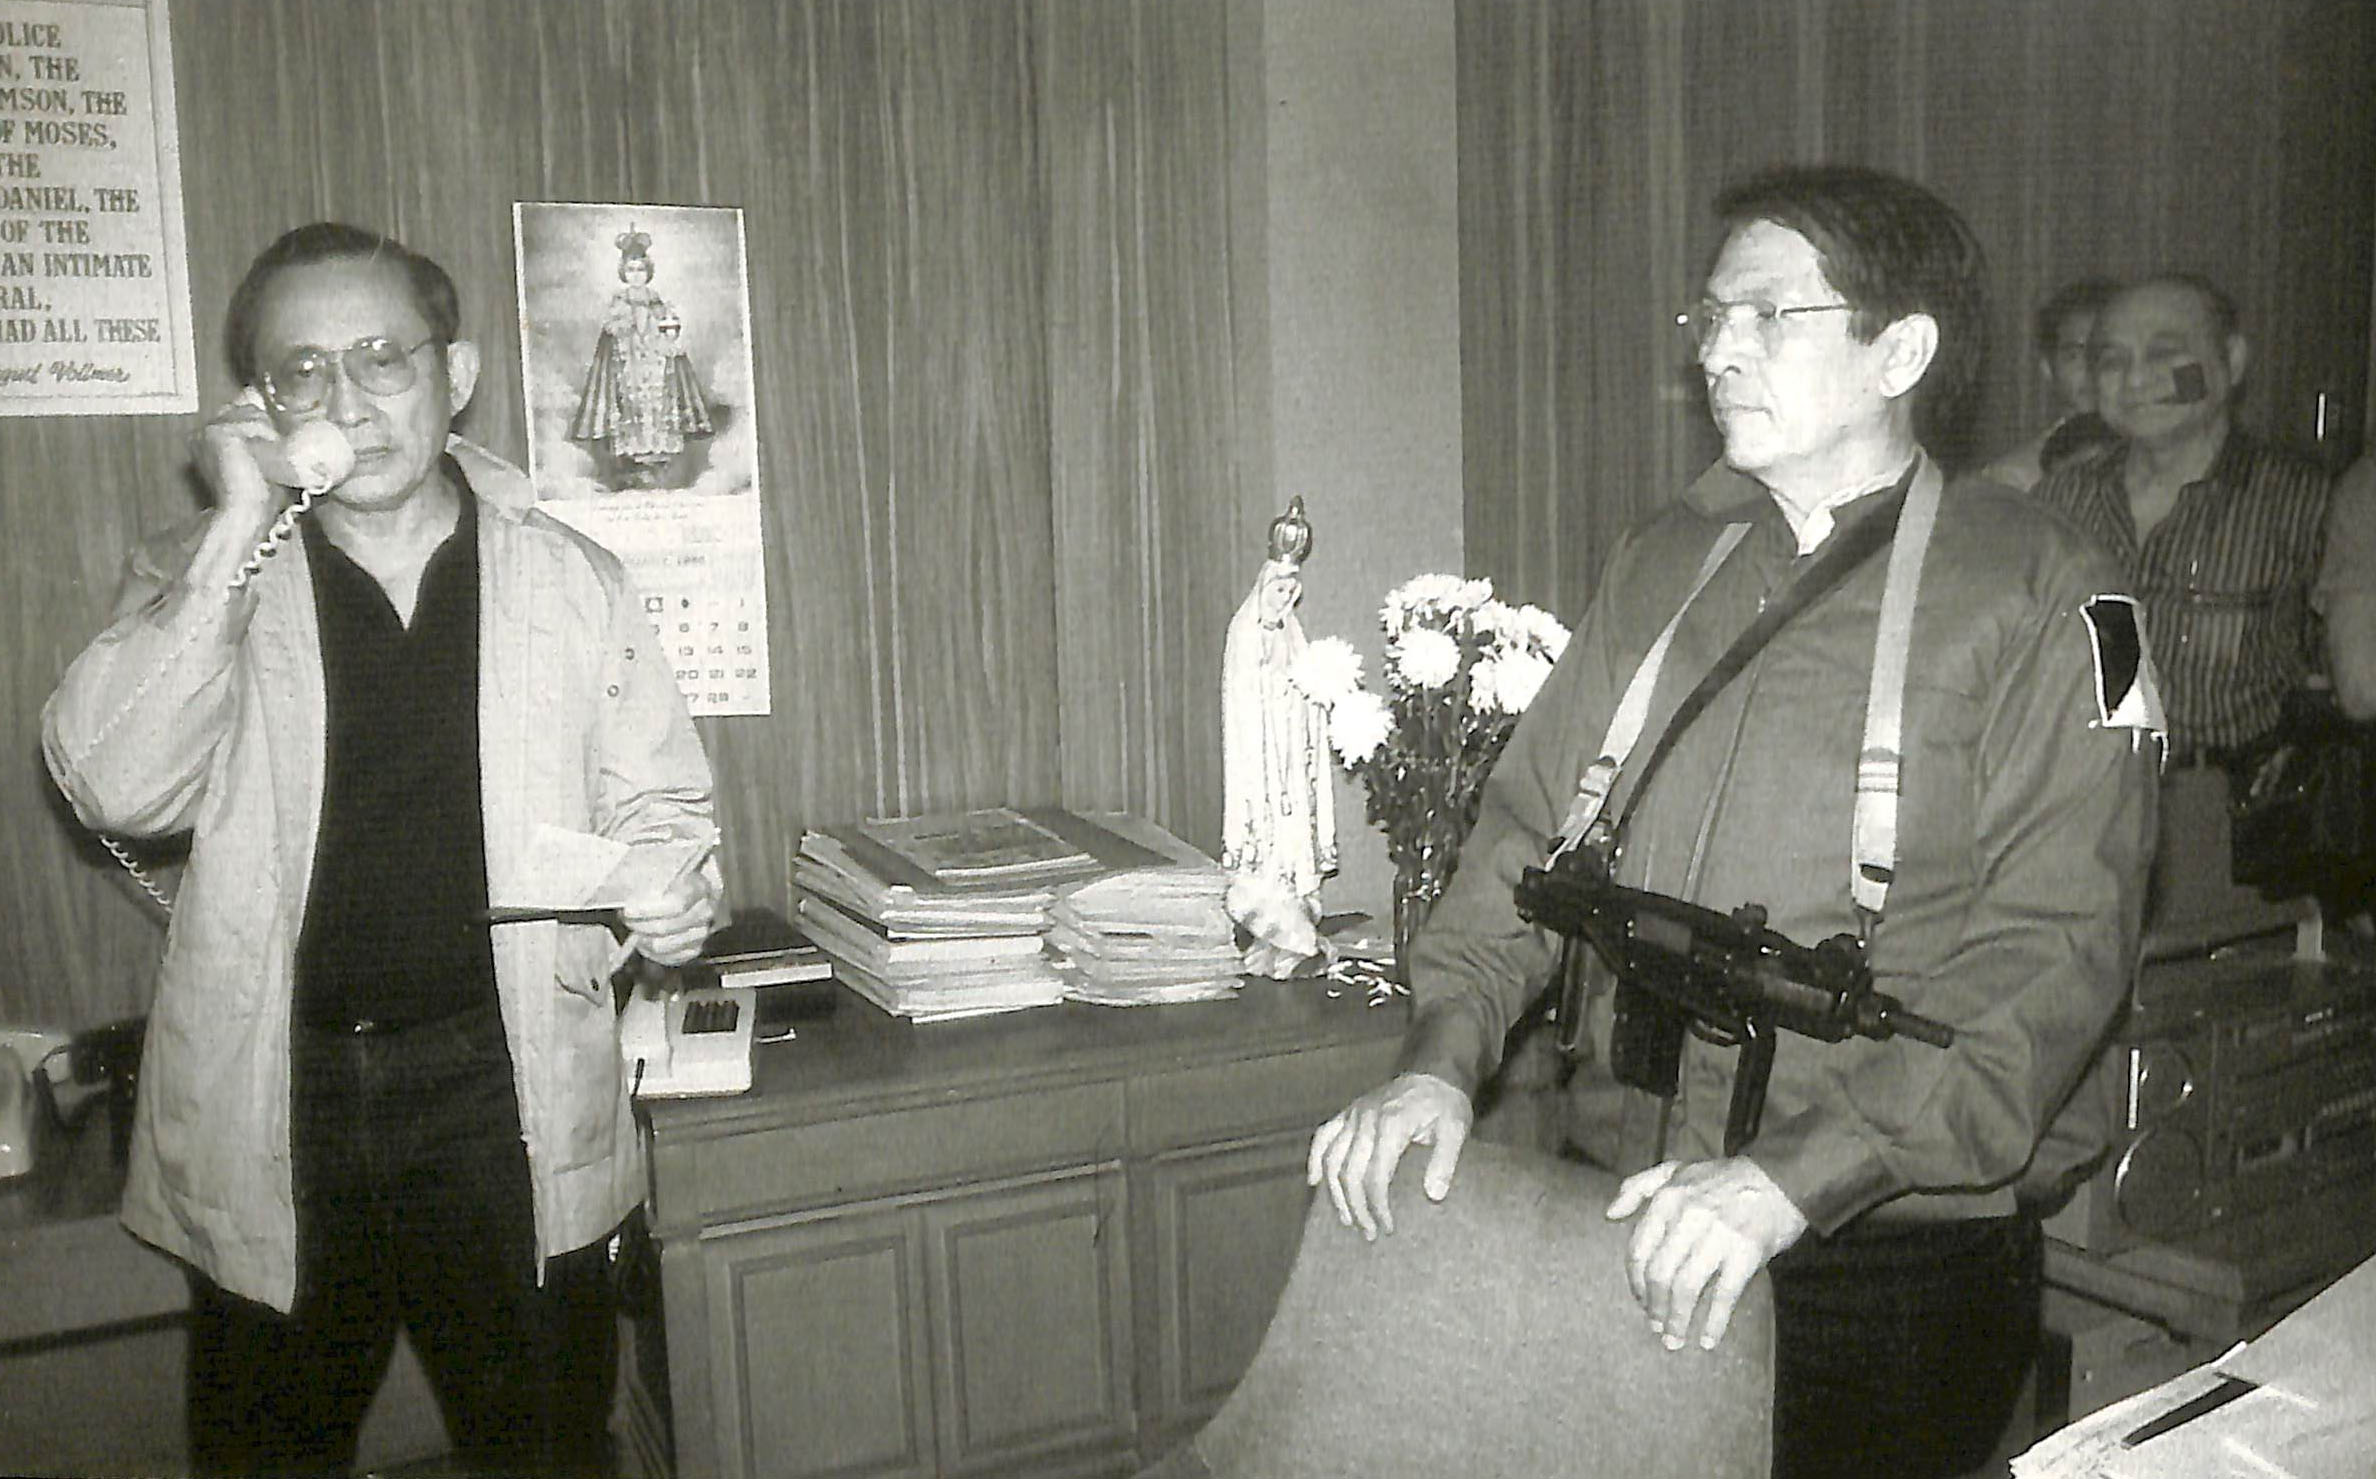 SUPPORT. Fidel V. Ramos and Juan Ponce Enrile call for support. Photo from the Presidential Museum and Library